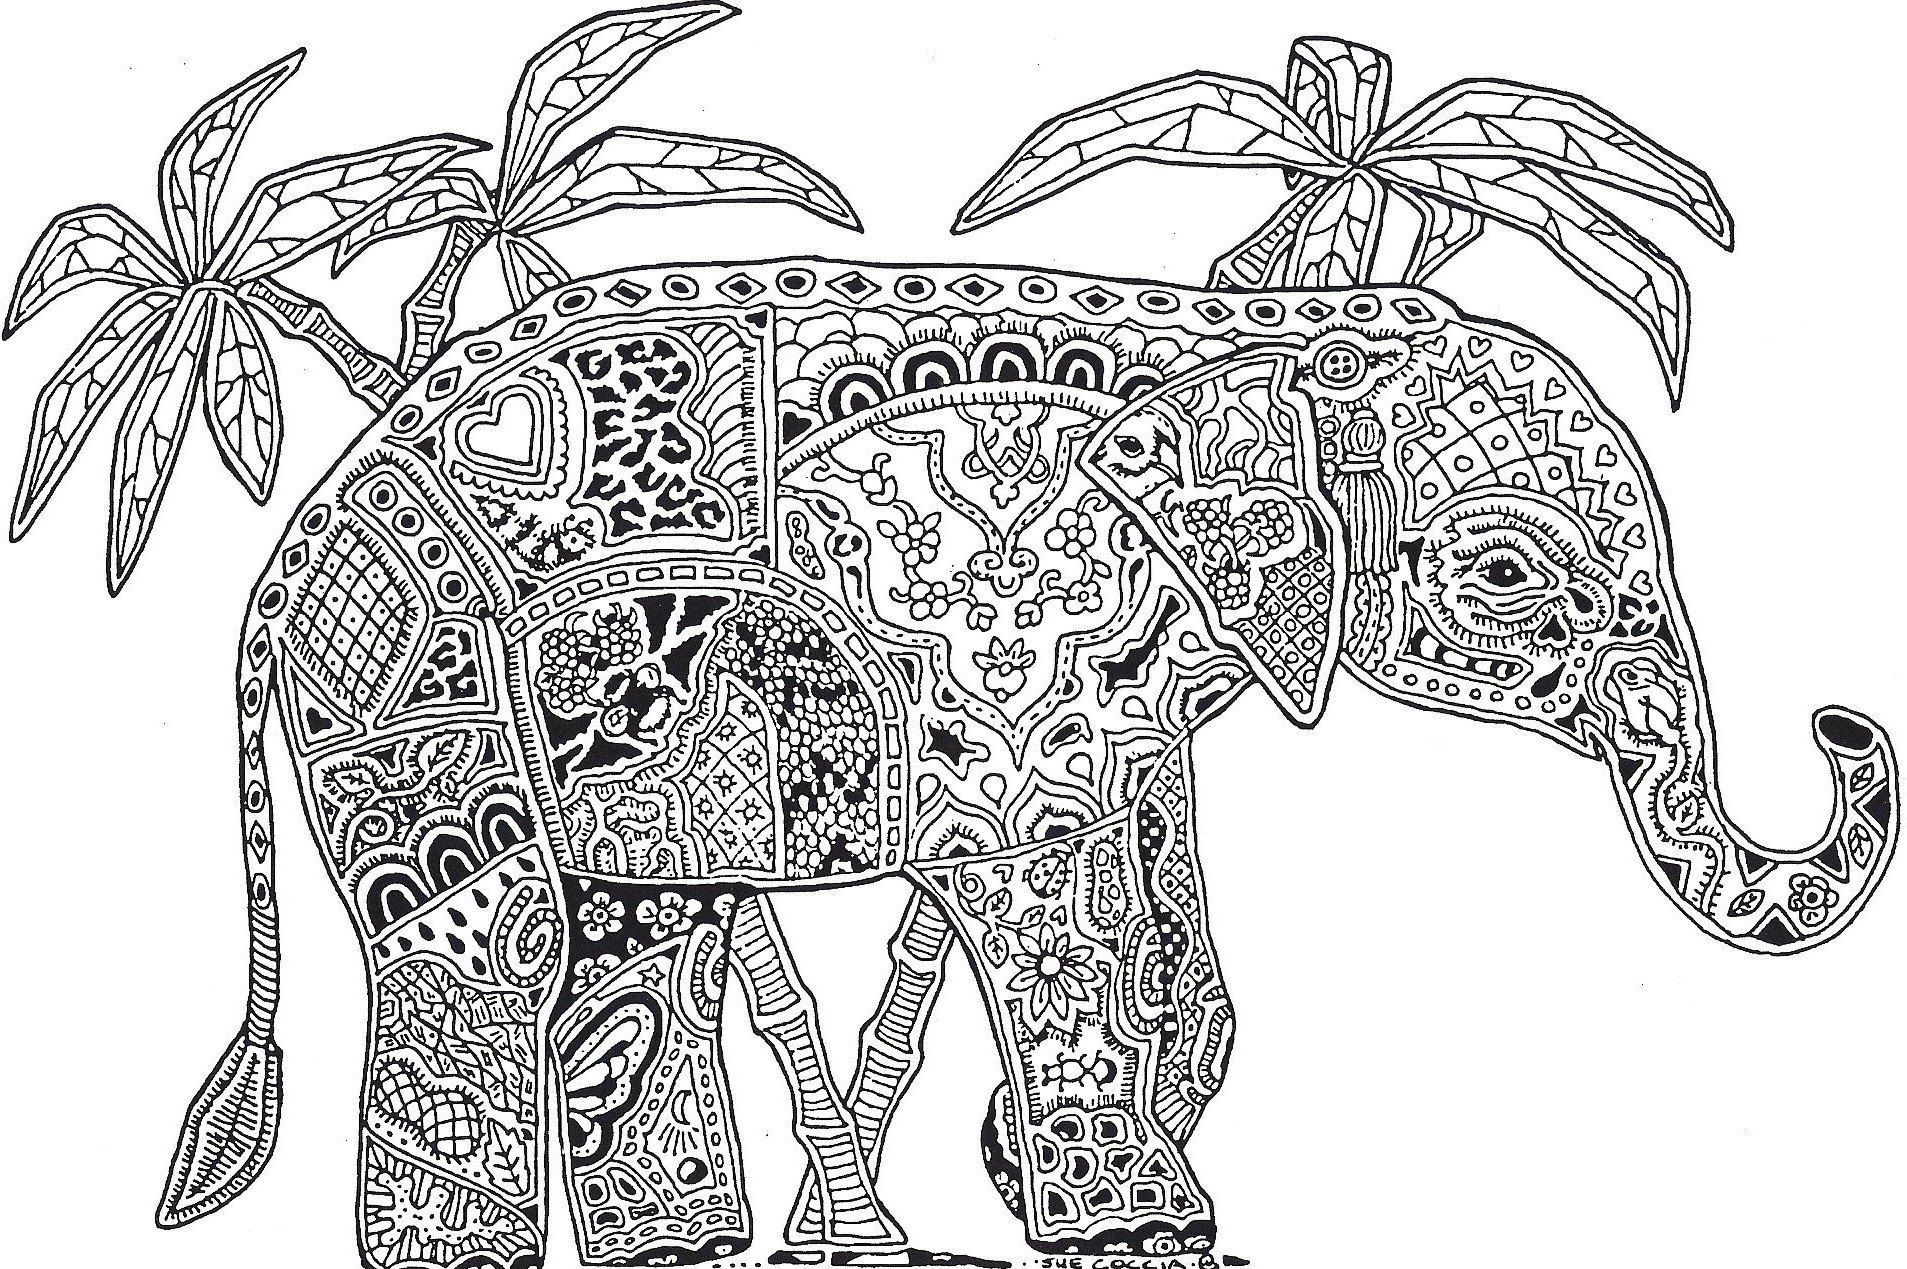 Intricate Coloring Pages Pdf Az Coloring Pages Coloring Pages Intricate